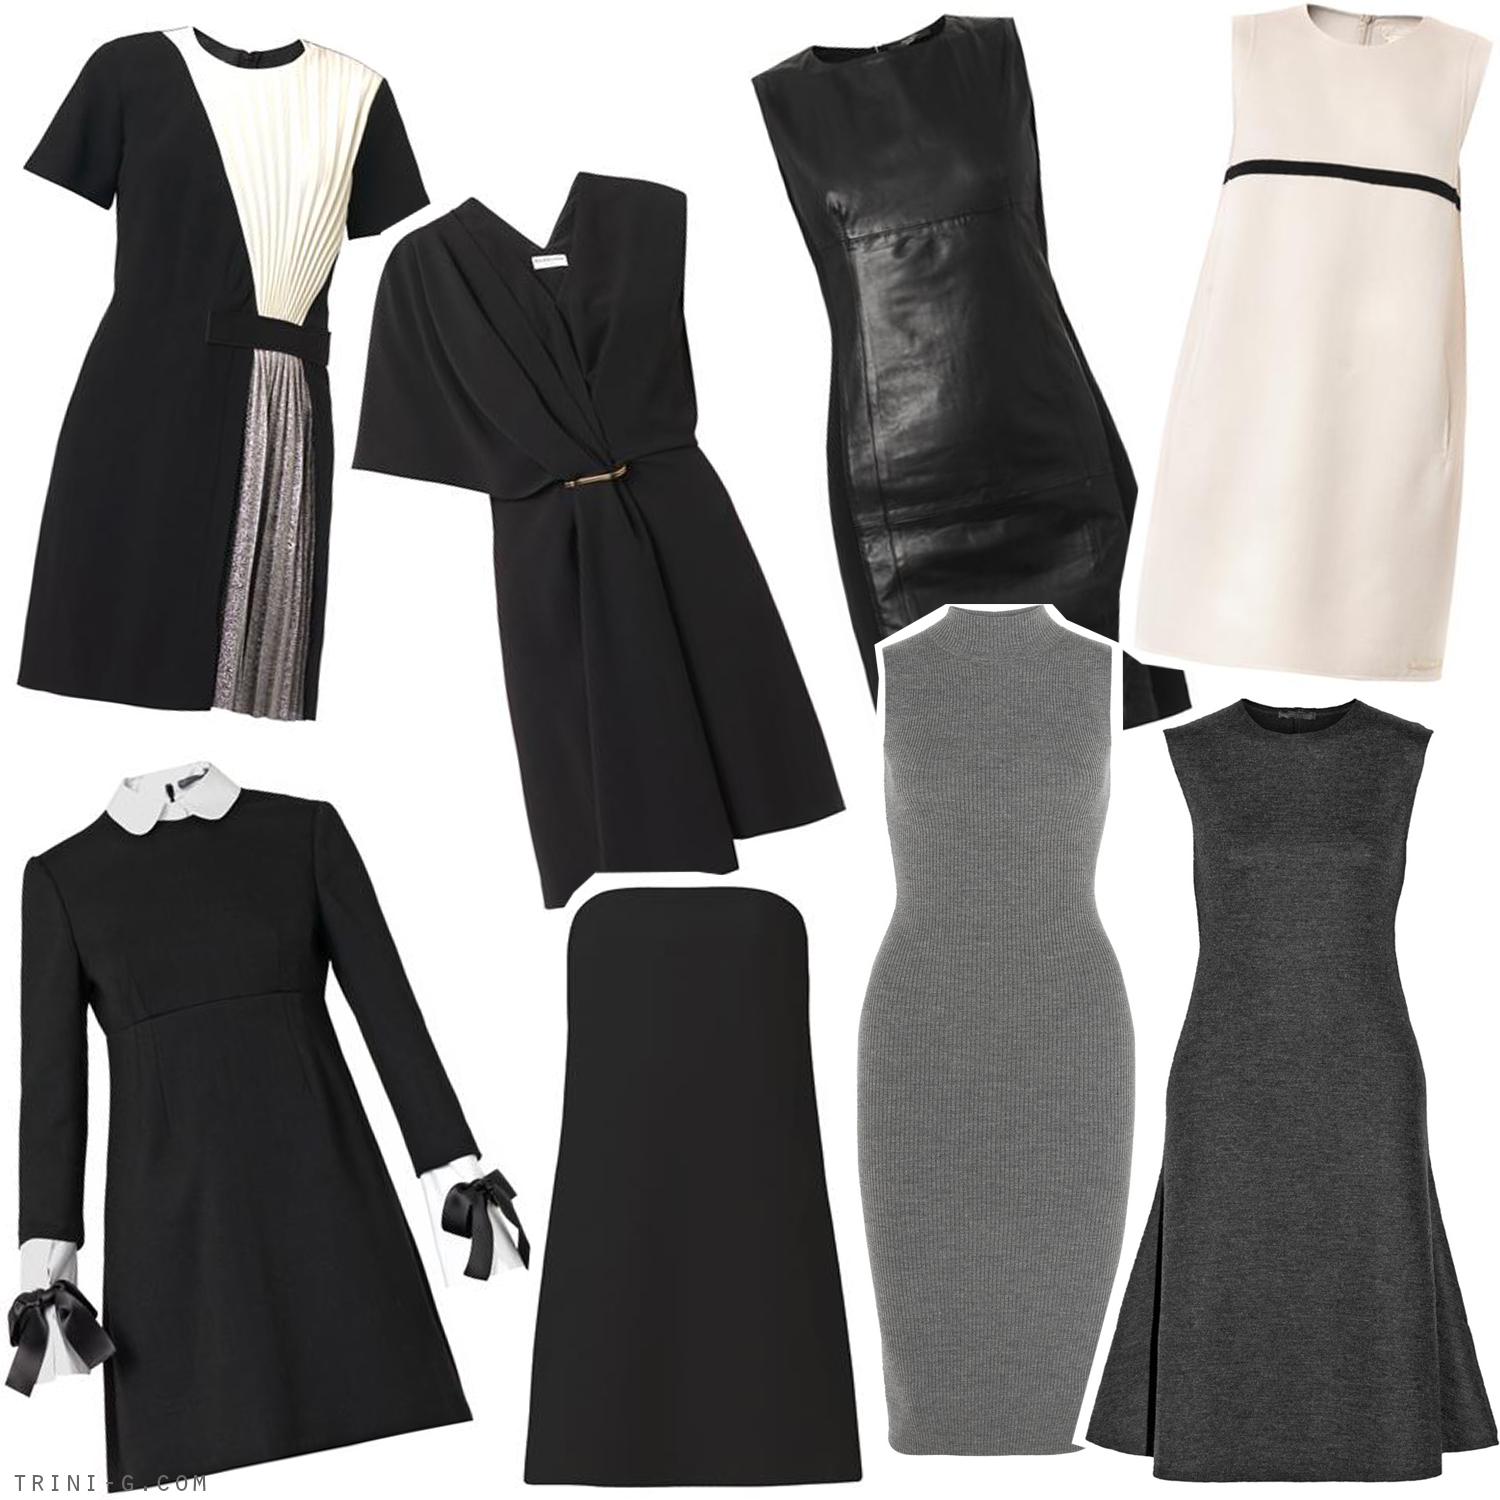 Trini blog | Dresses for the Holidays